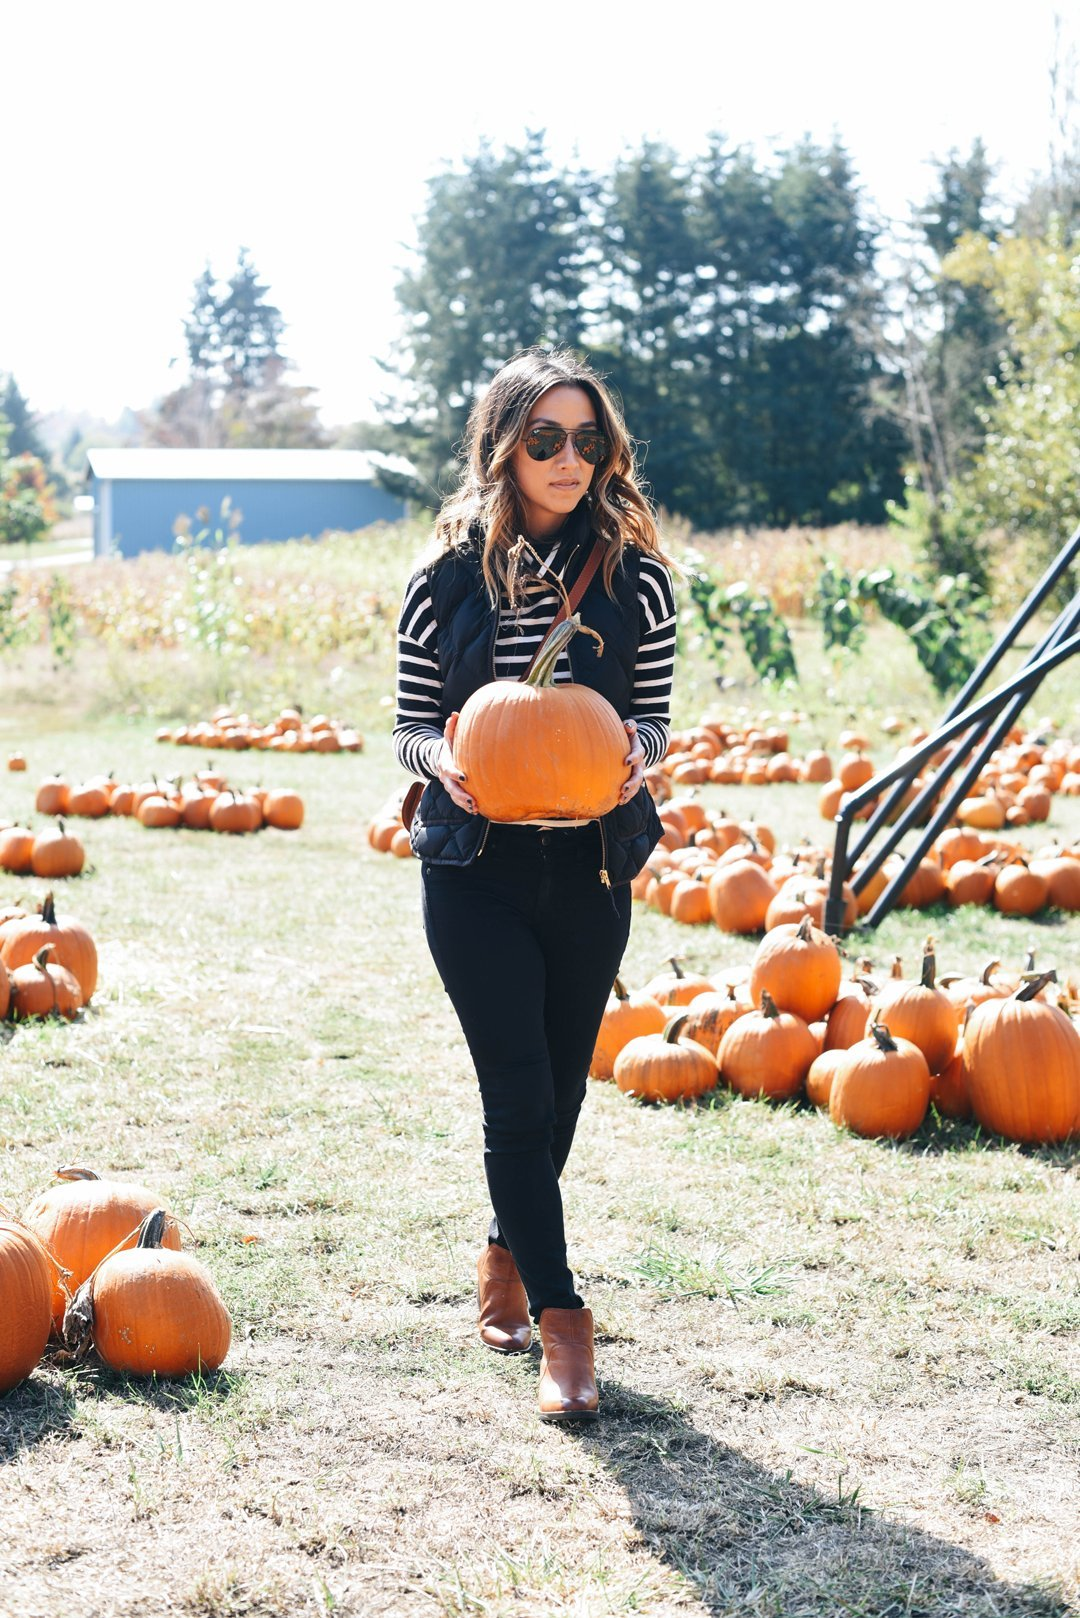 crystalin-marie-at-rysers-farm-pumpkin-patch